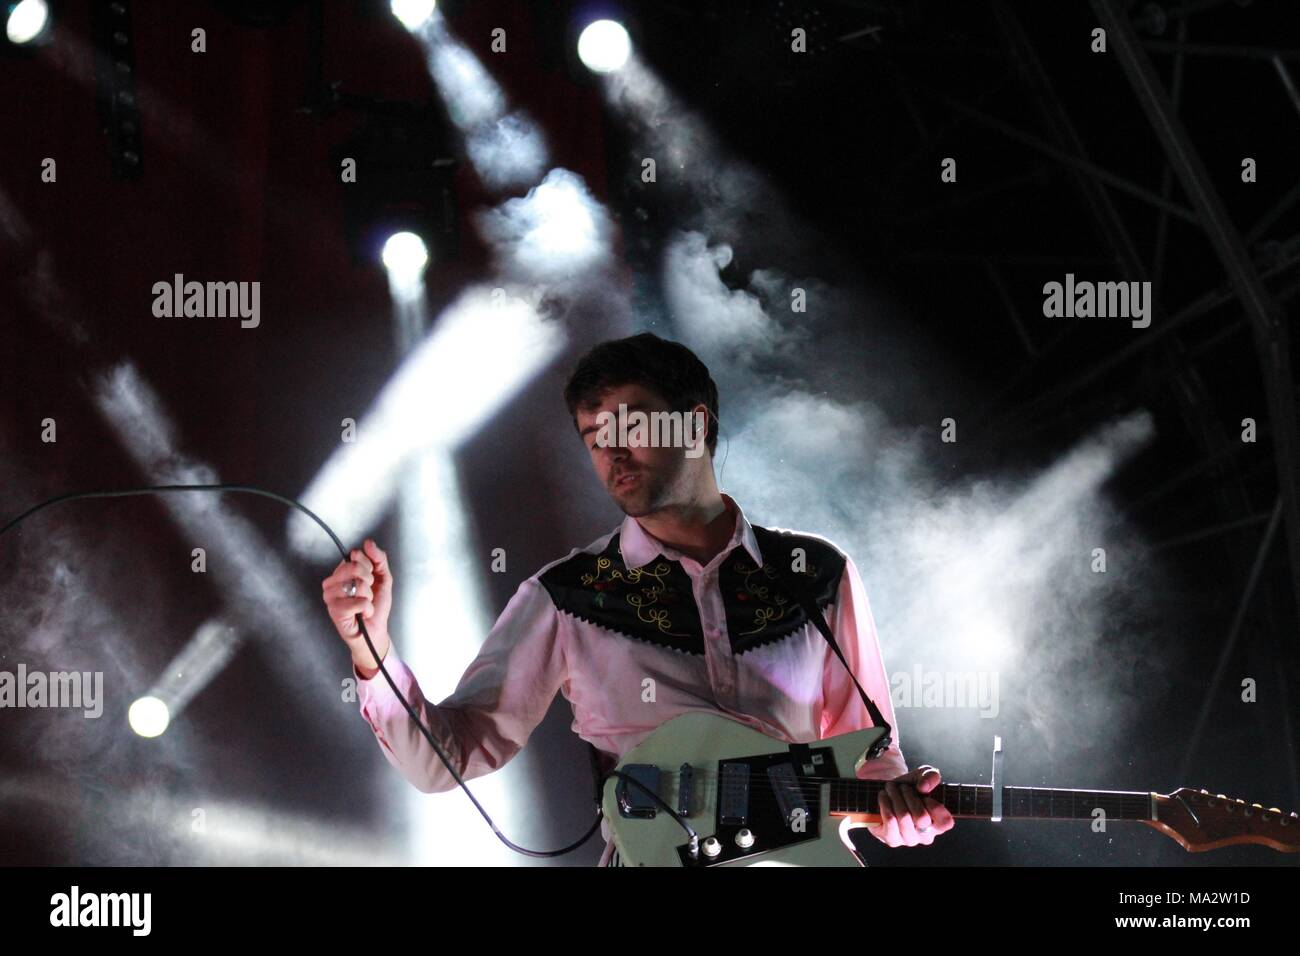 The Vaccines play live at Truck Festival - Stock Image